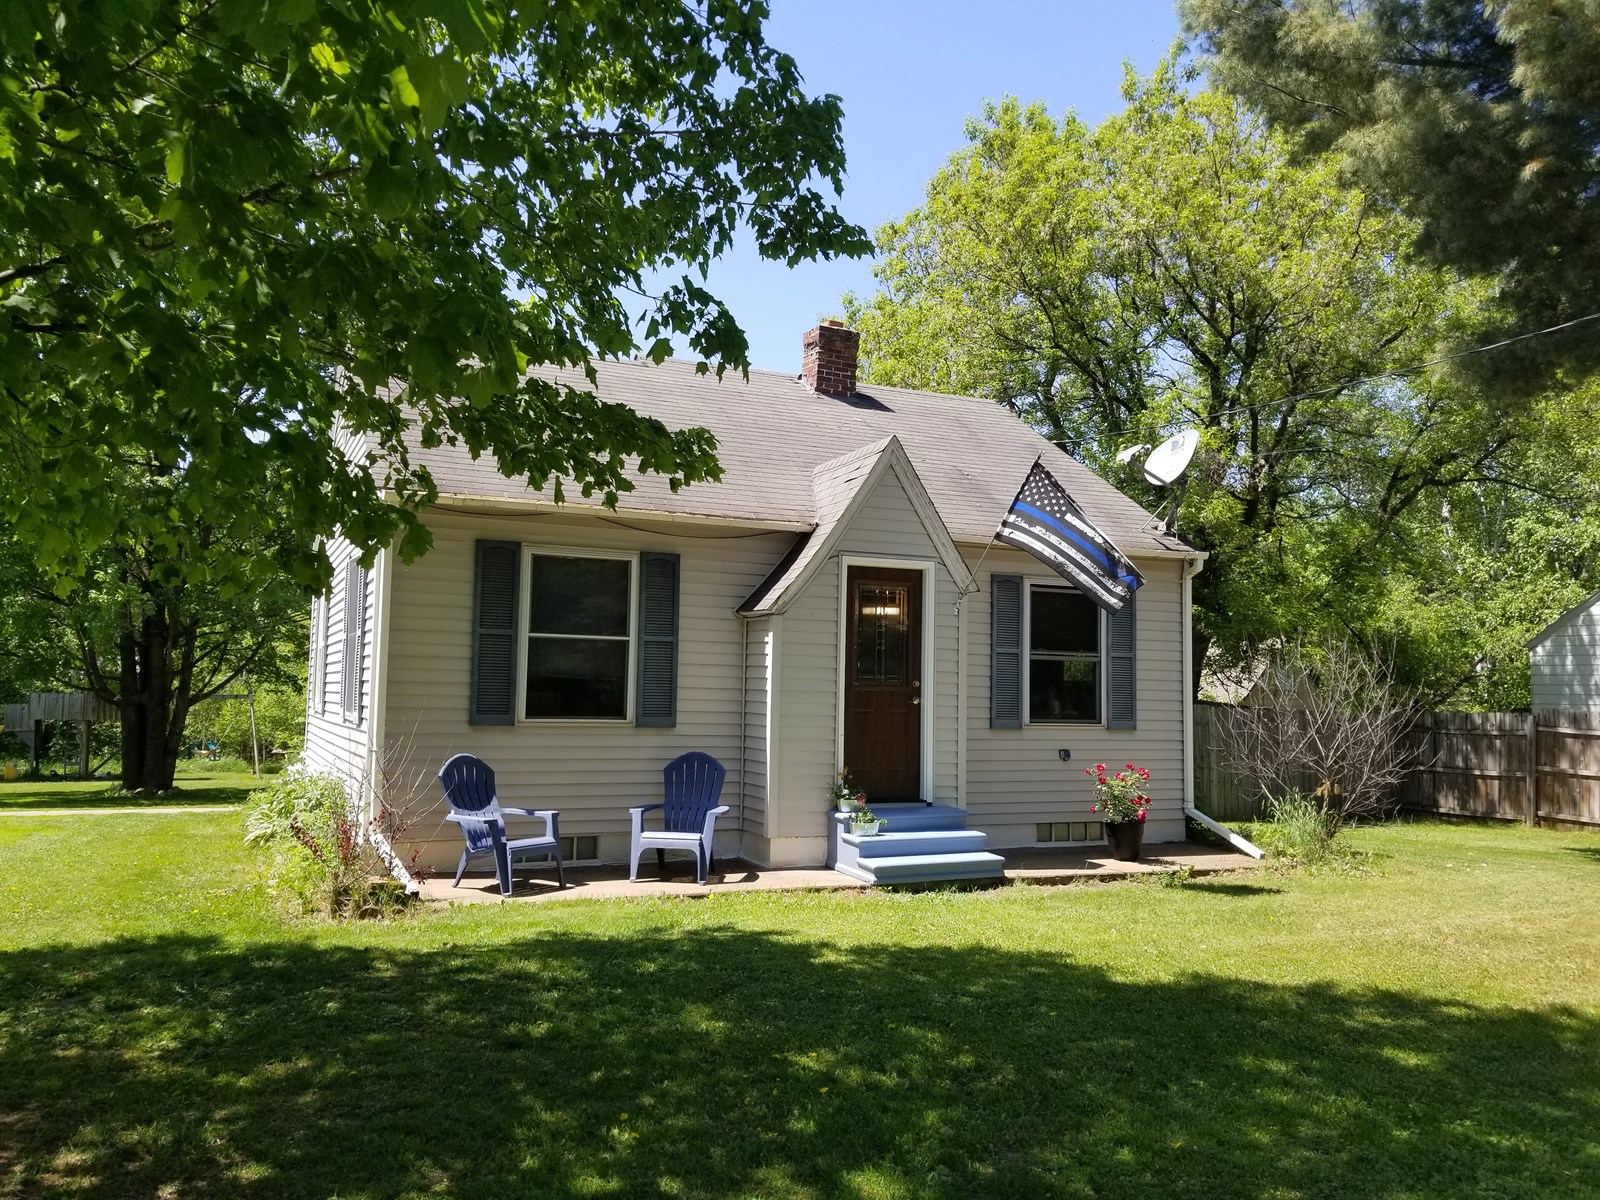 Home for sale in Hibbing MN St. Louis County